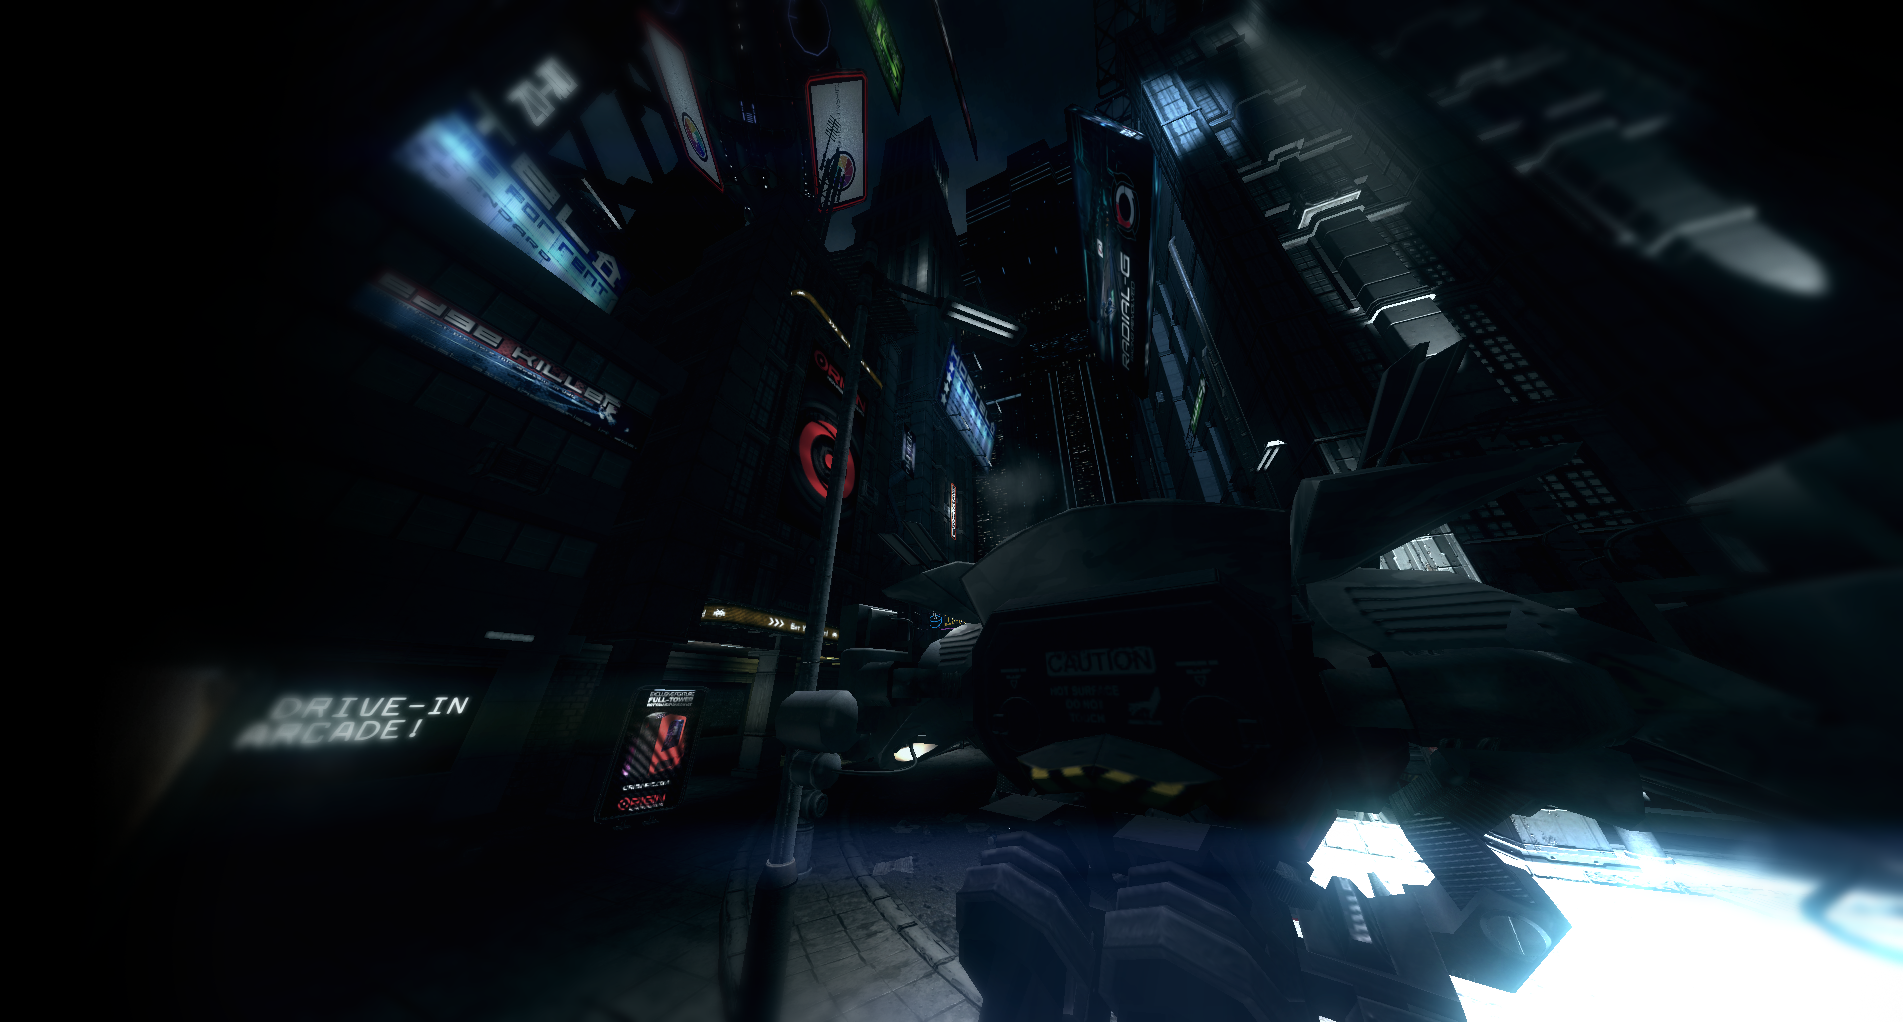 Zero Cool as a Blade Runner: Technolust demo is virtual reality's best livingdiorama